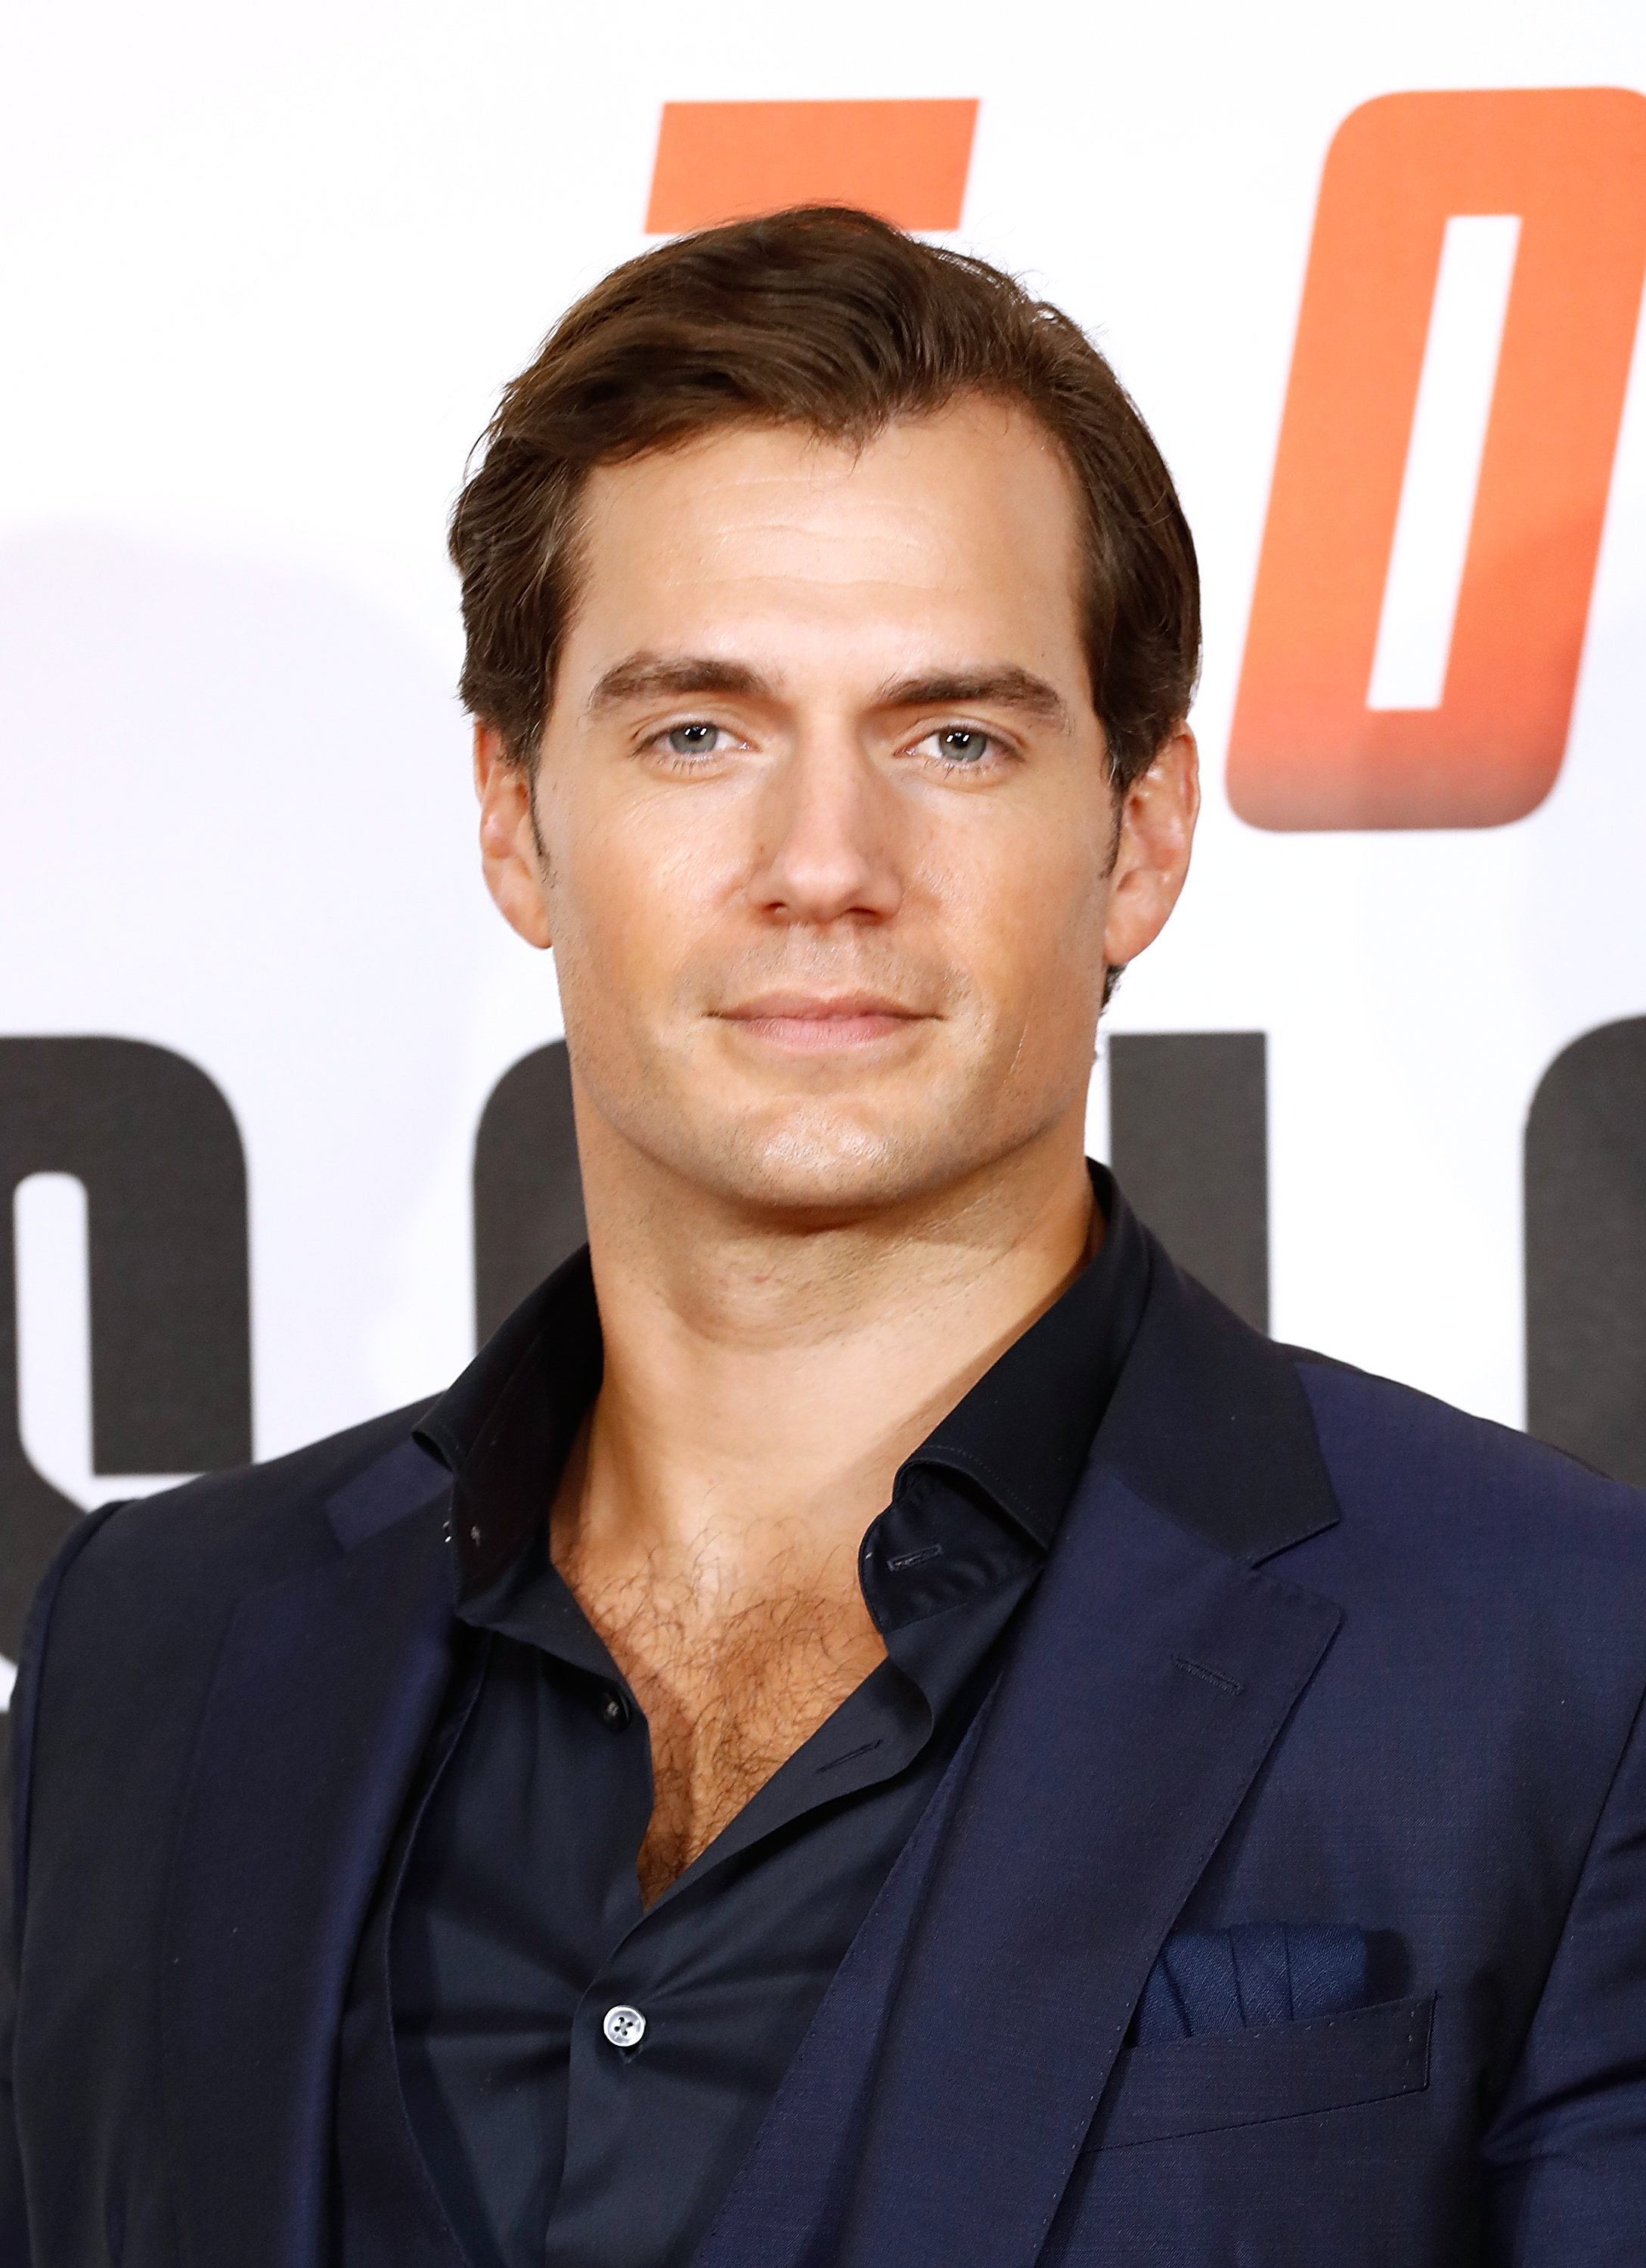 Henry Cavill attends the UK Premiere of 'Mission: Impossible - Fallout' at the BFI IMAX on July 13, 2018 in London, England.